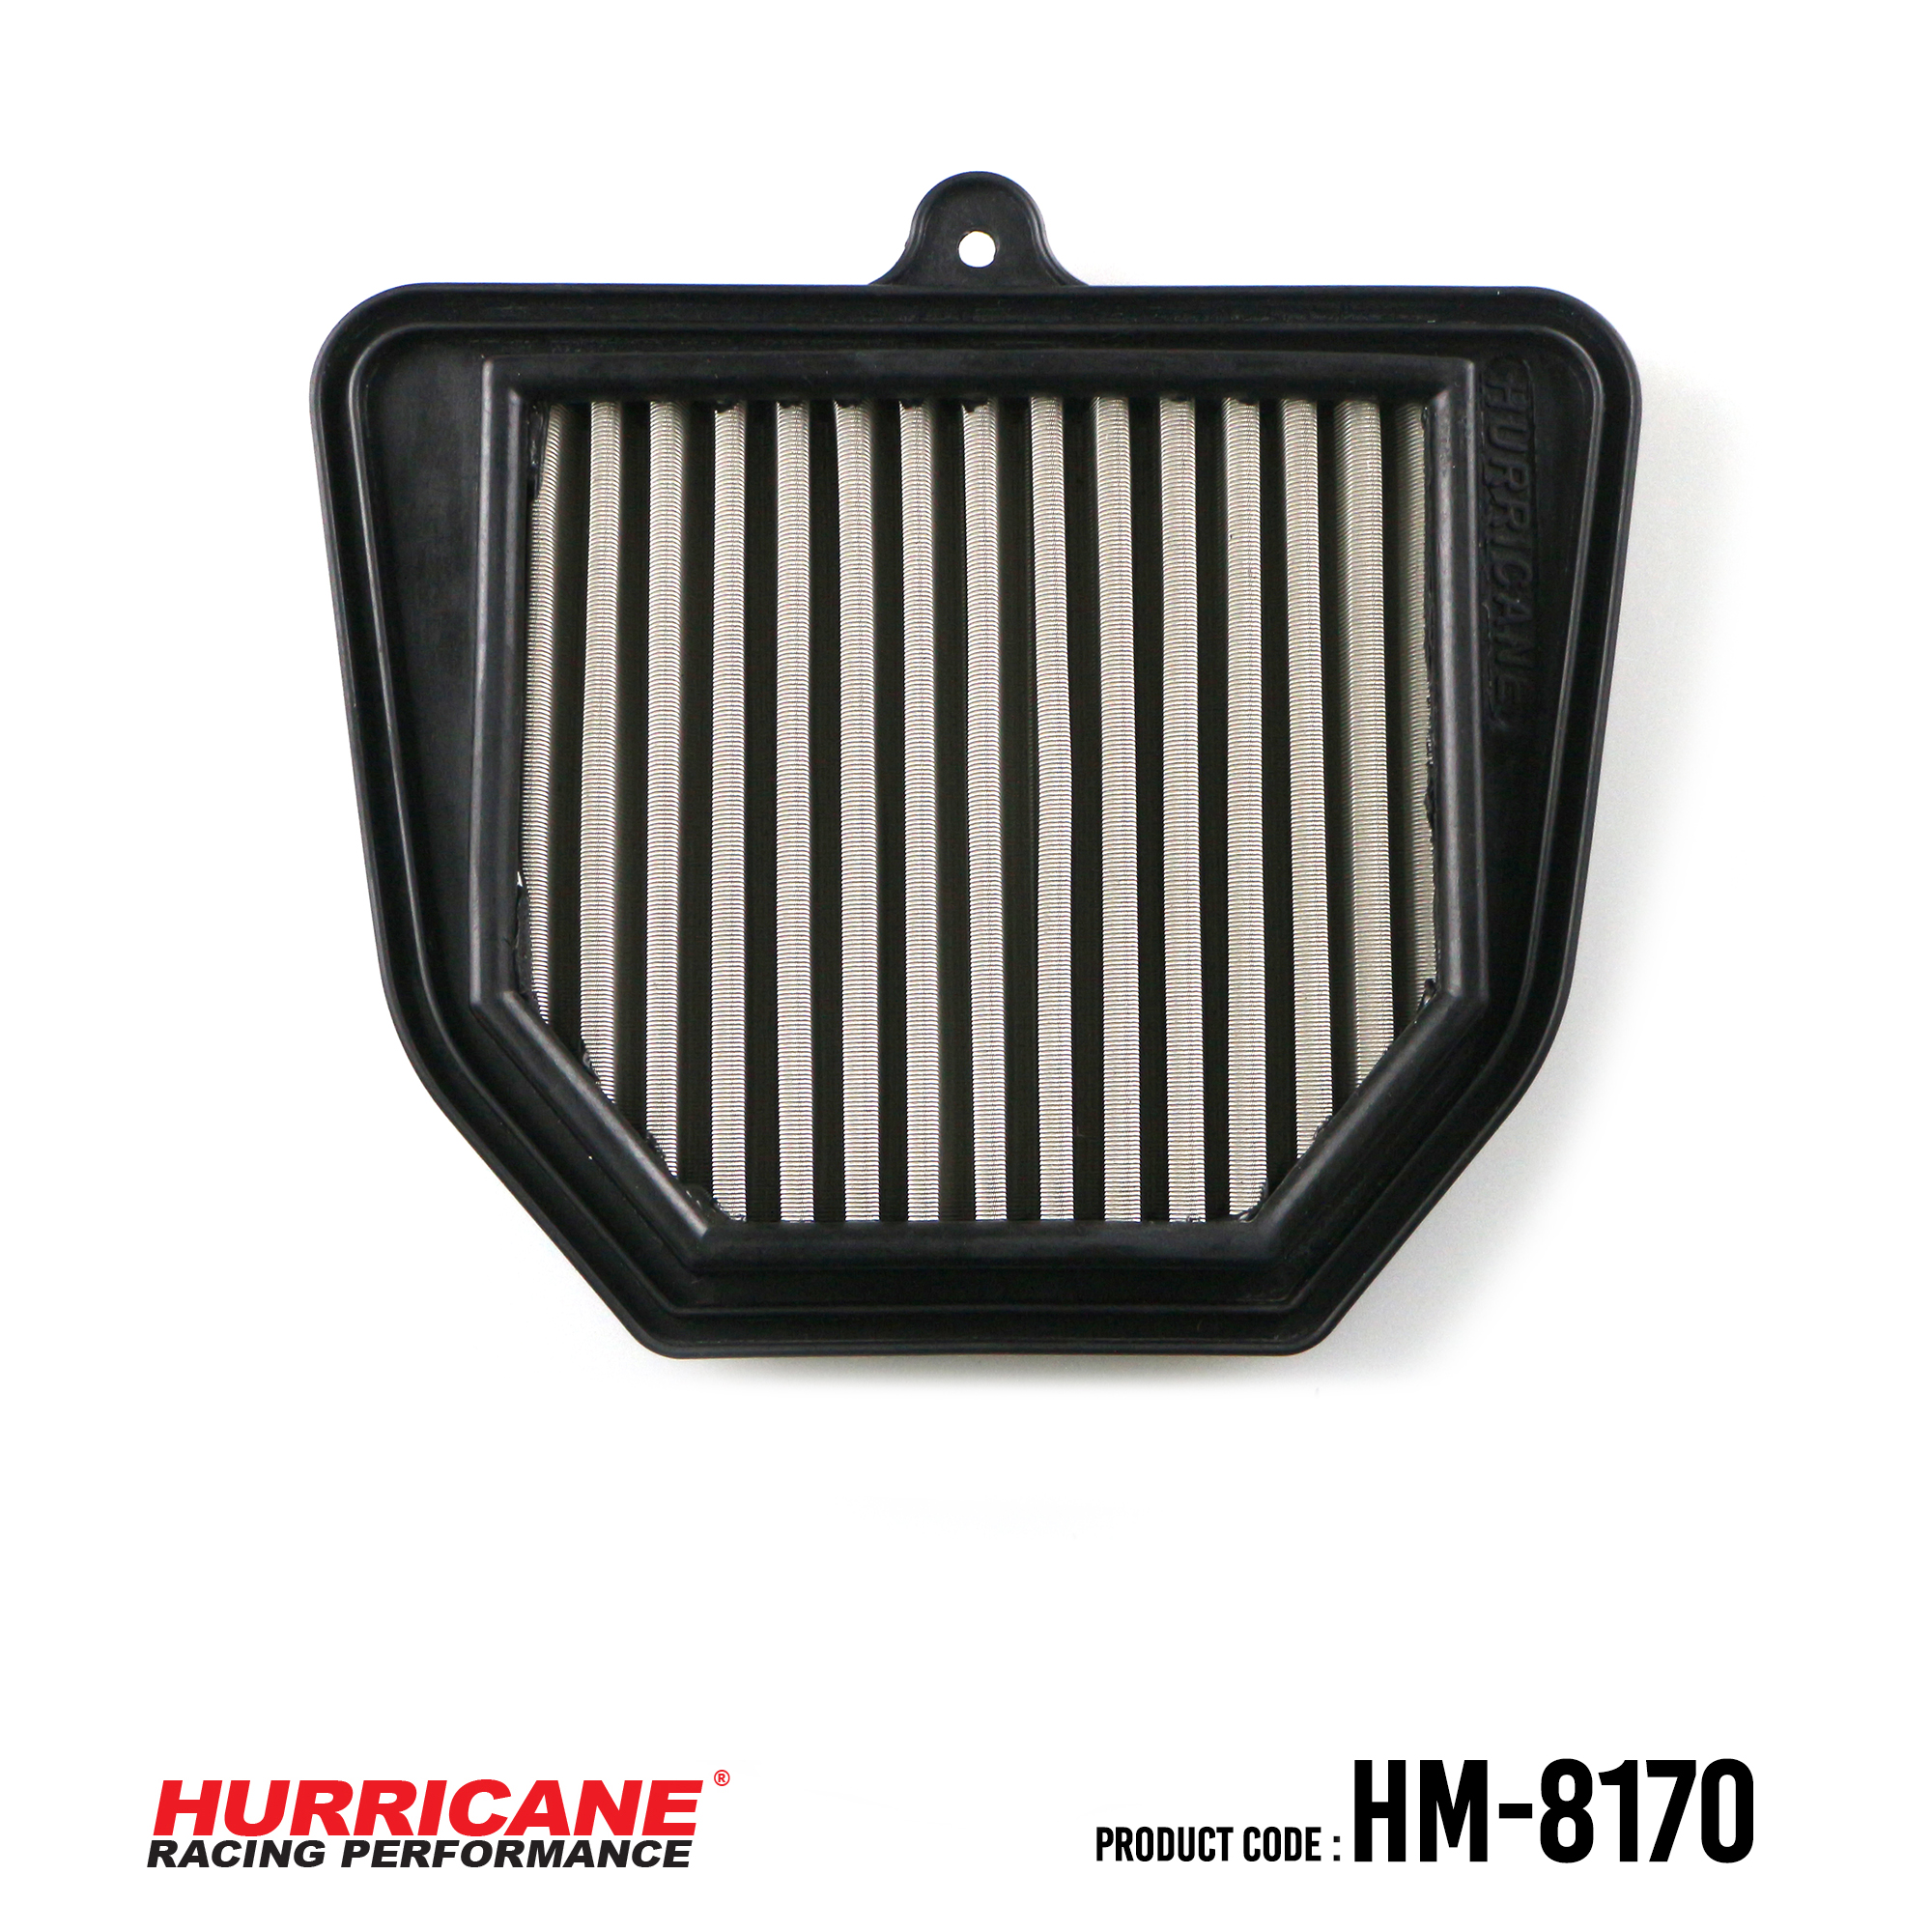 HURRICANE STAINLESS STEEL AIR FILTER FOR HM-8170 Yamaha